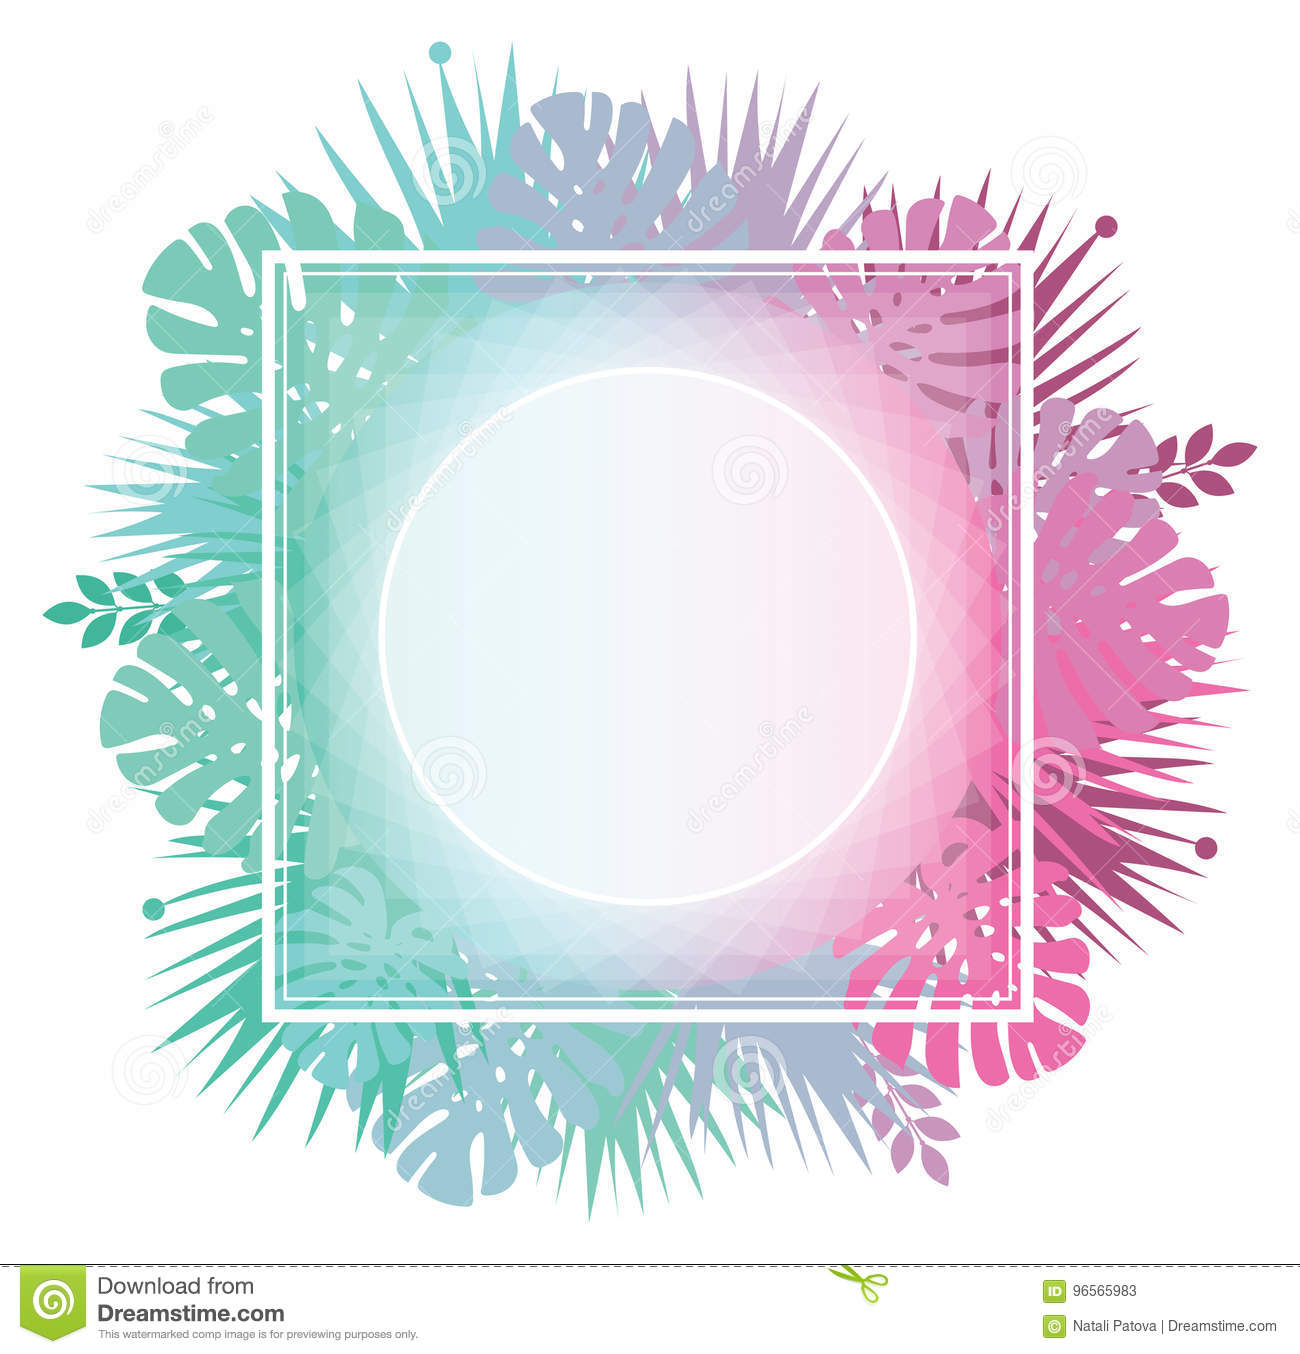 abstract template with gradient backgrounds and tropical leaves